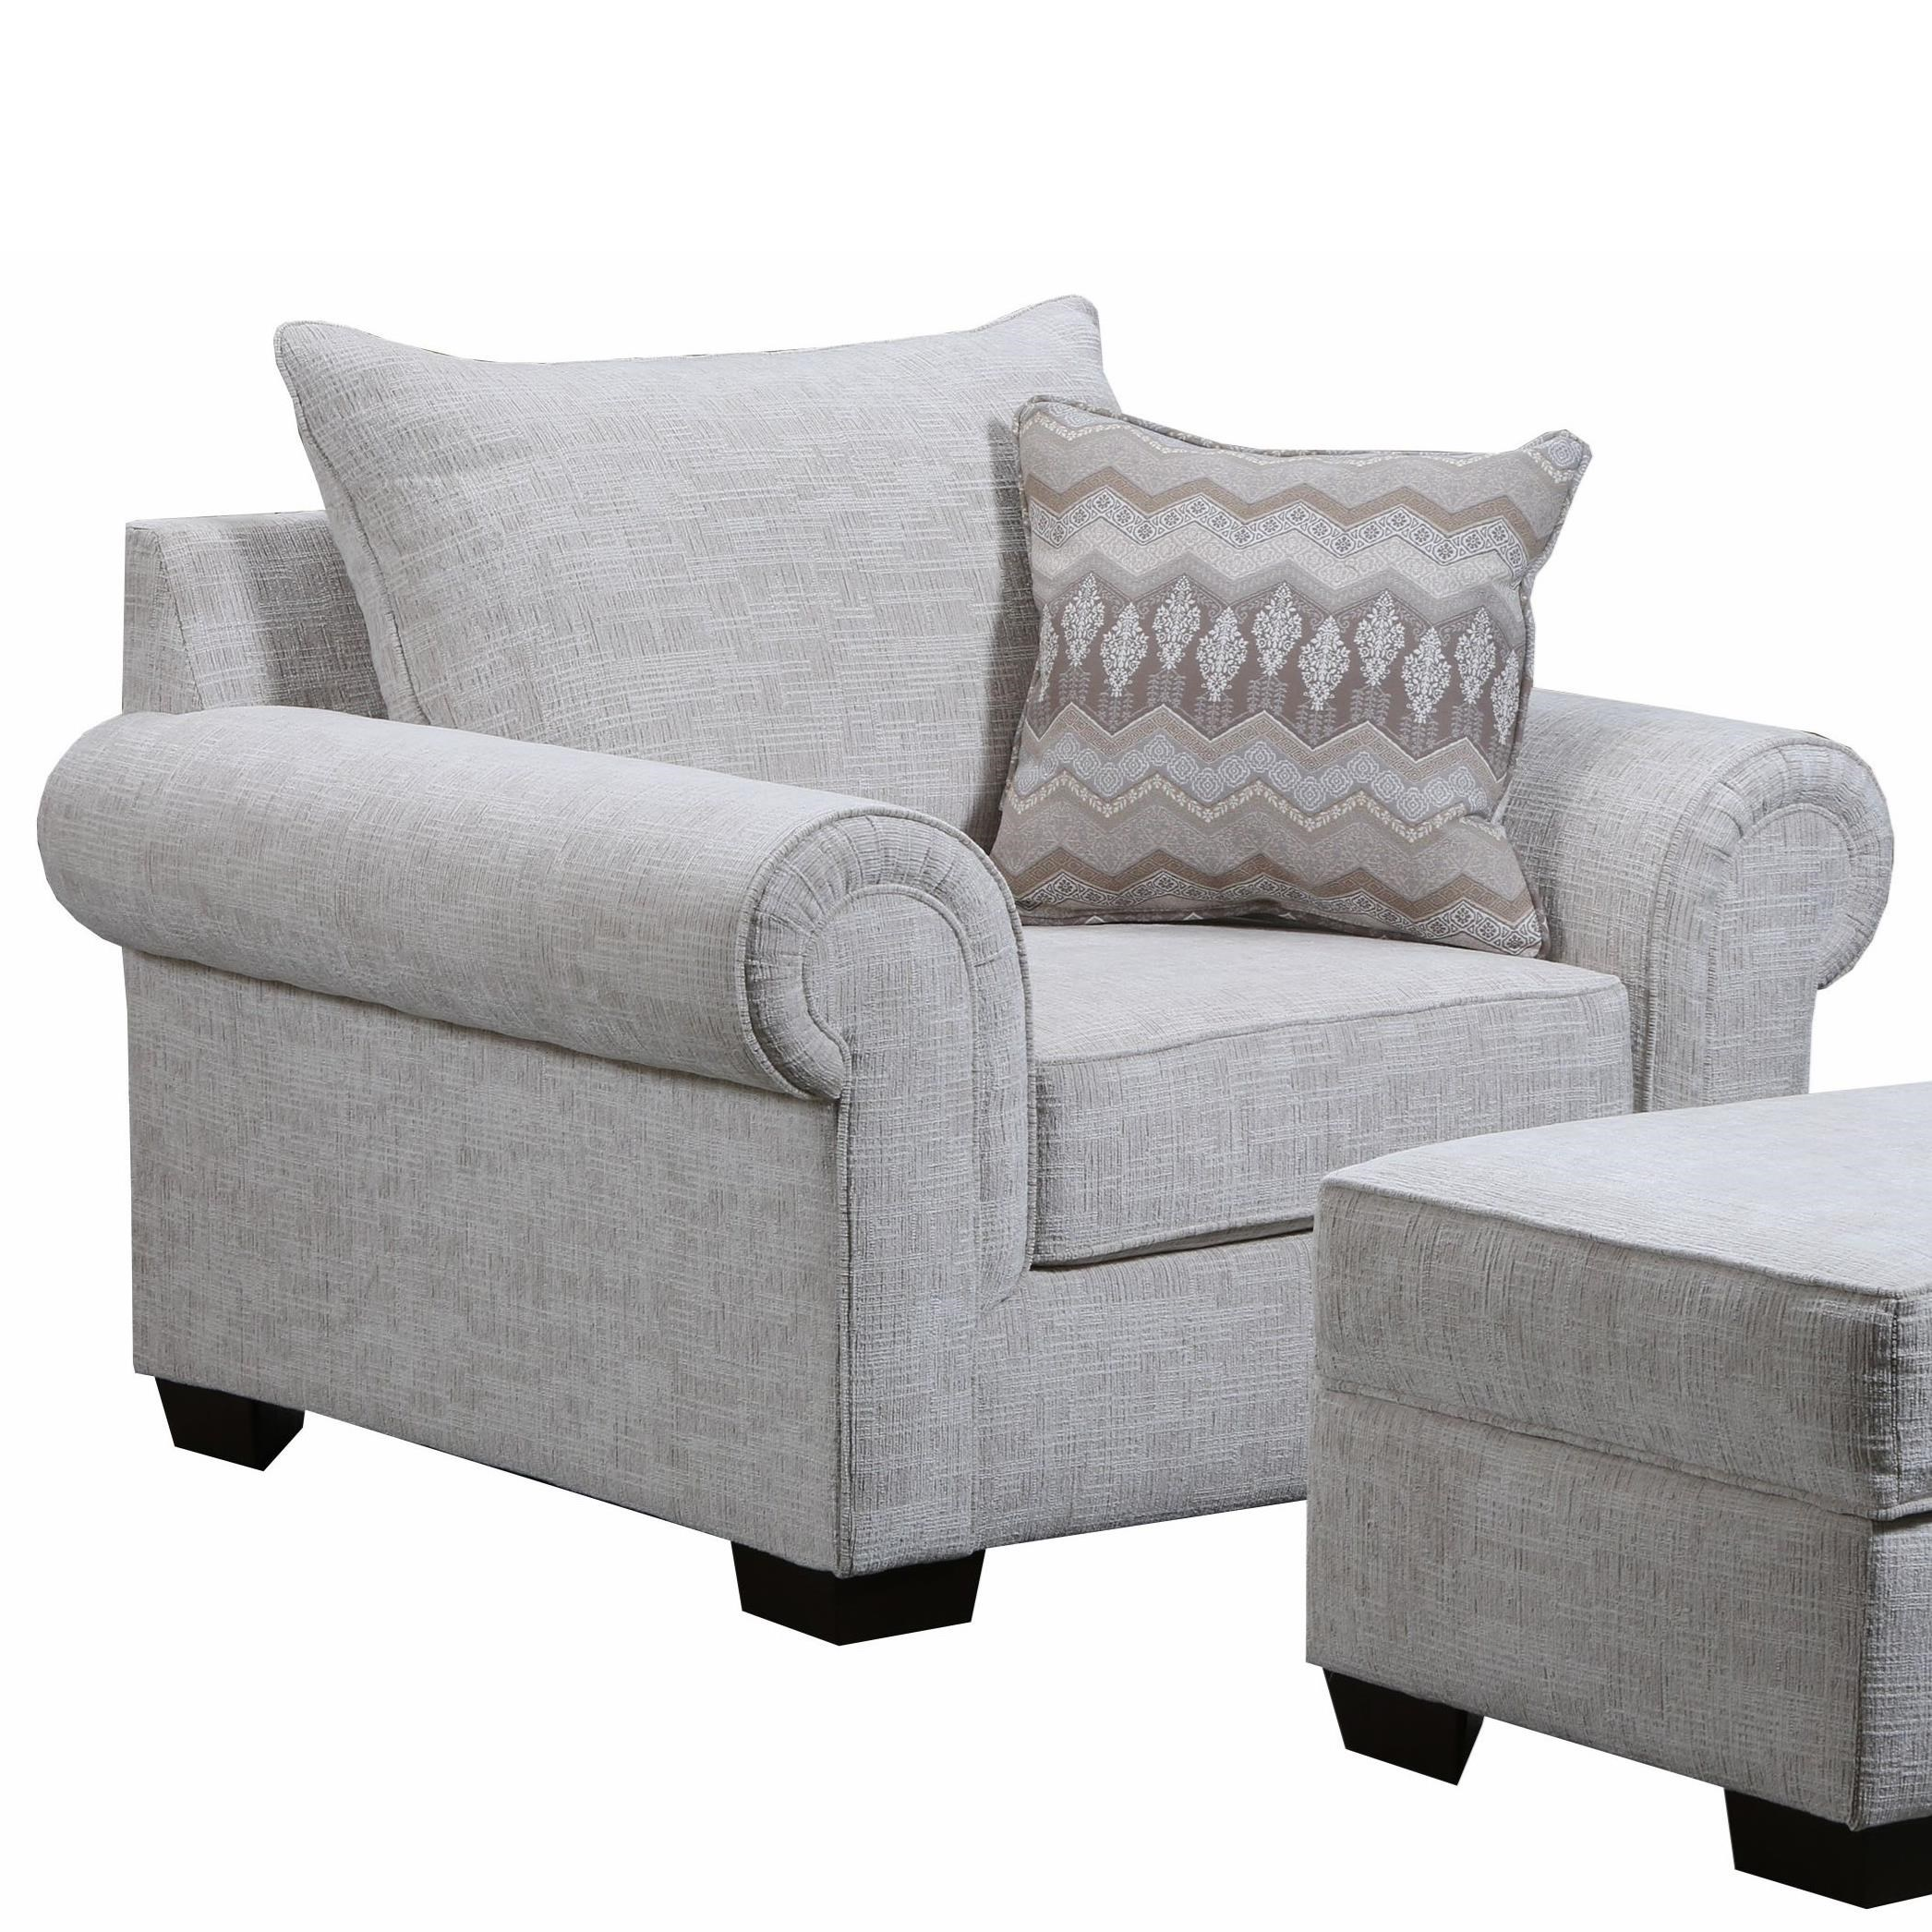 7592BR Chair and a Quarter by United Furniture Industries at Pilgrim Furniture City